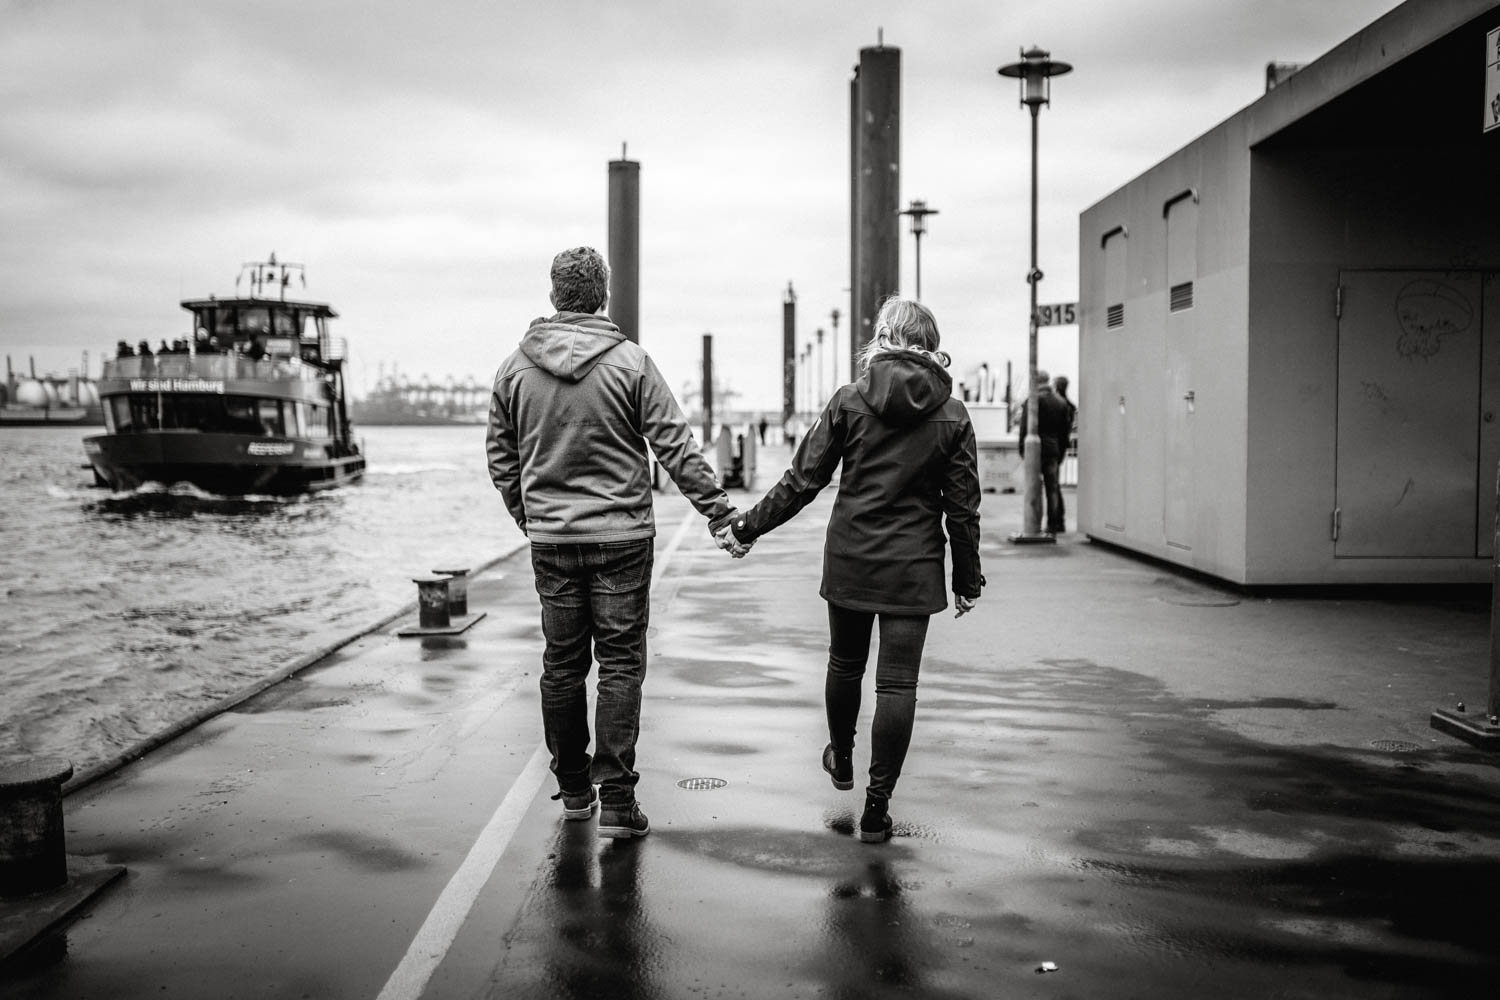 Engagementshooting, Hochzeitsfieber by Photo-Schomburg, Pärchenshoot, Hamburg, Elbe, Hamburger Hafen, Hochzeitsfotograf, Wedding, Coupleshoot-21